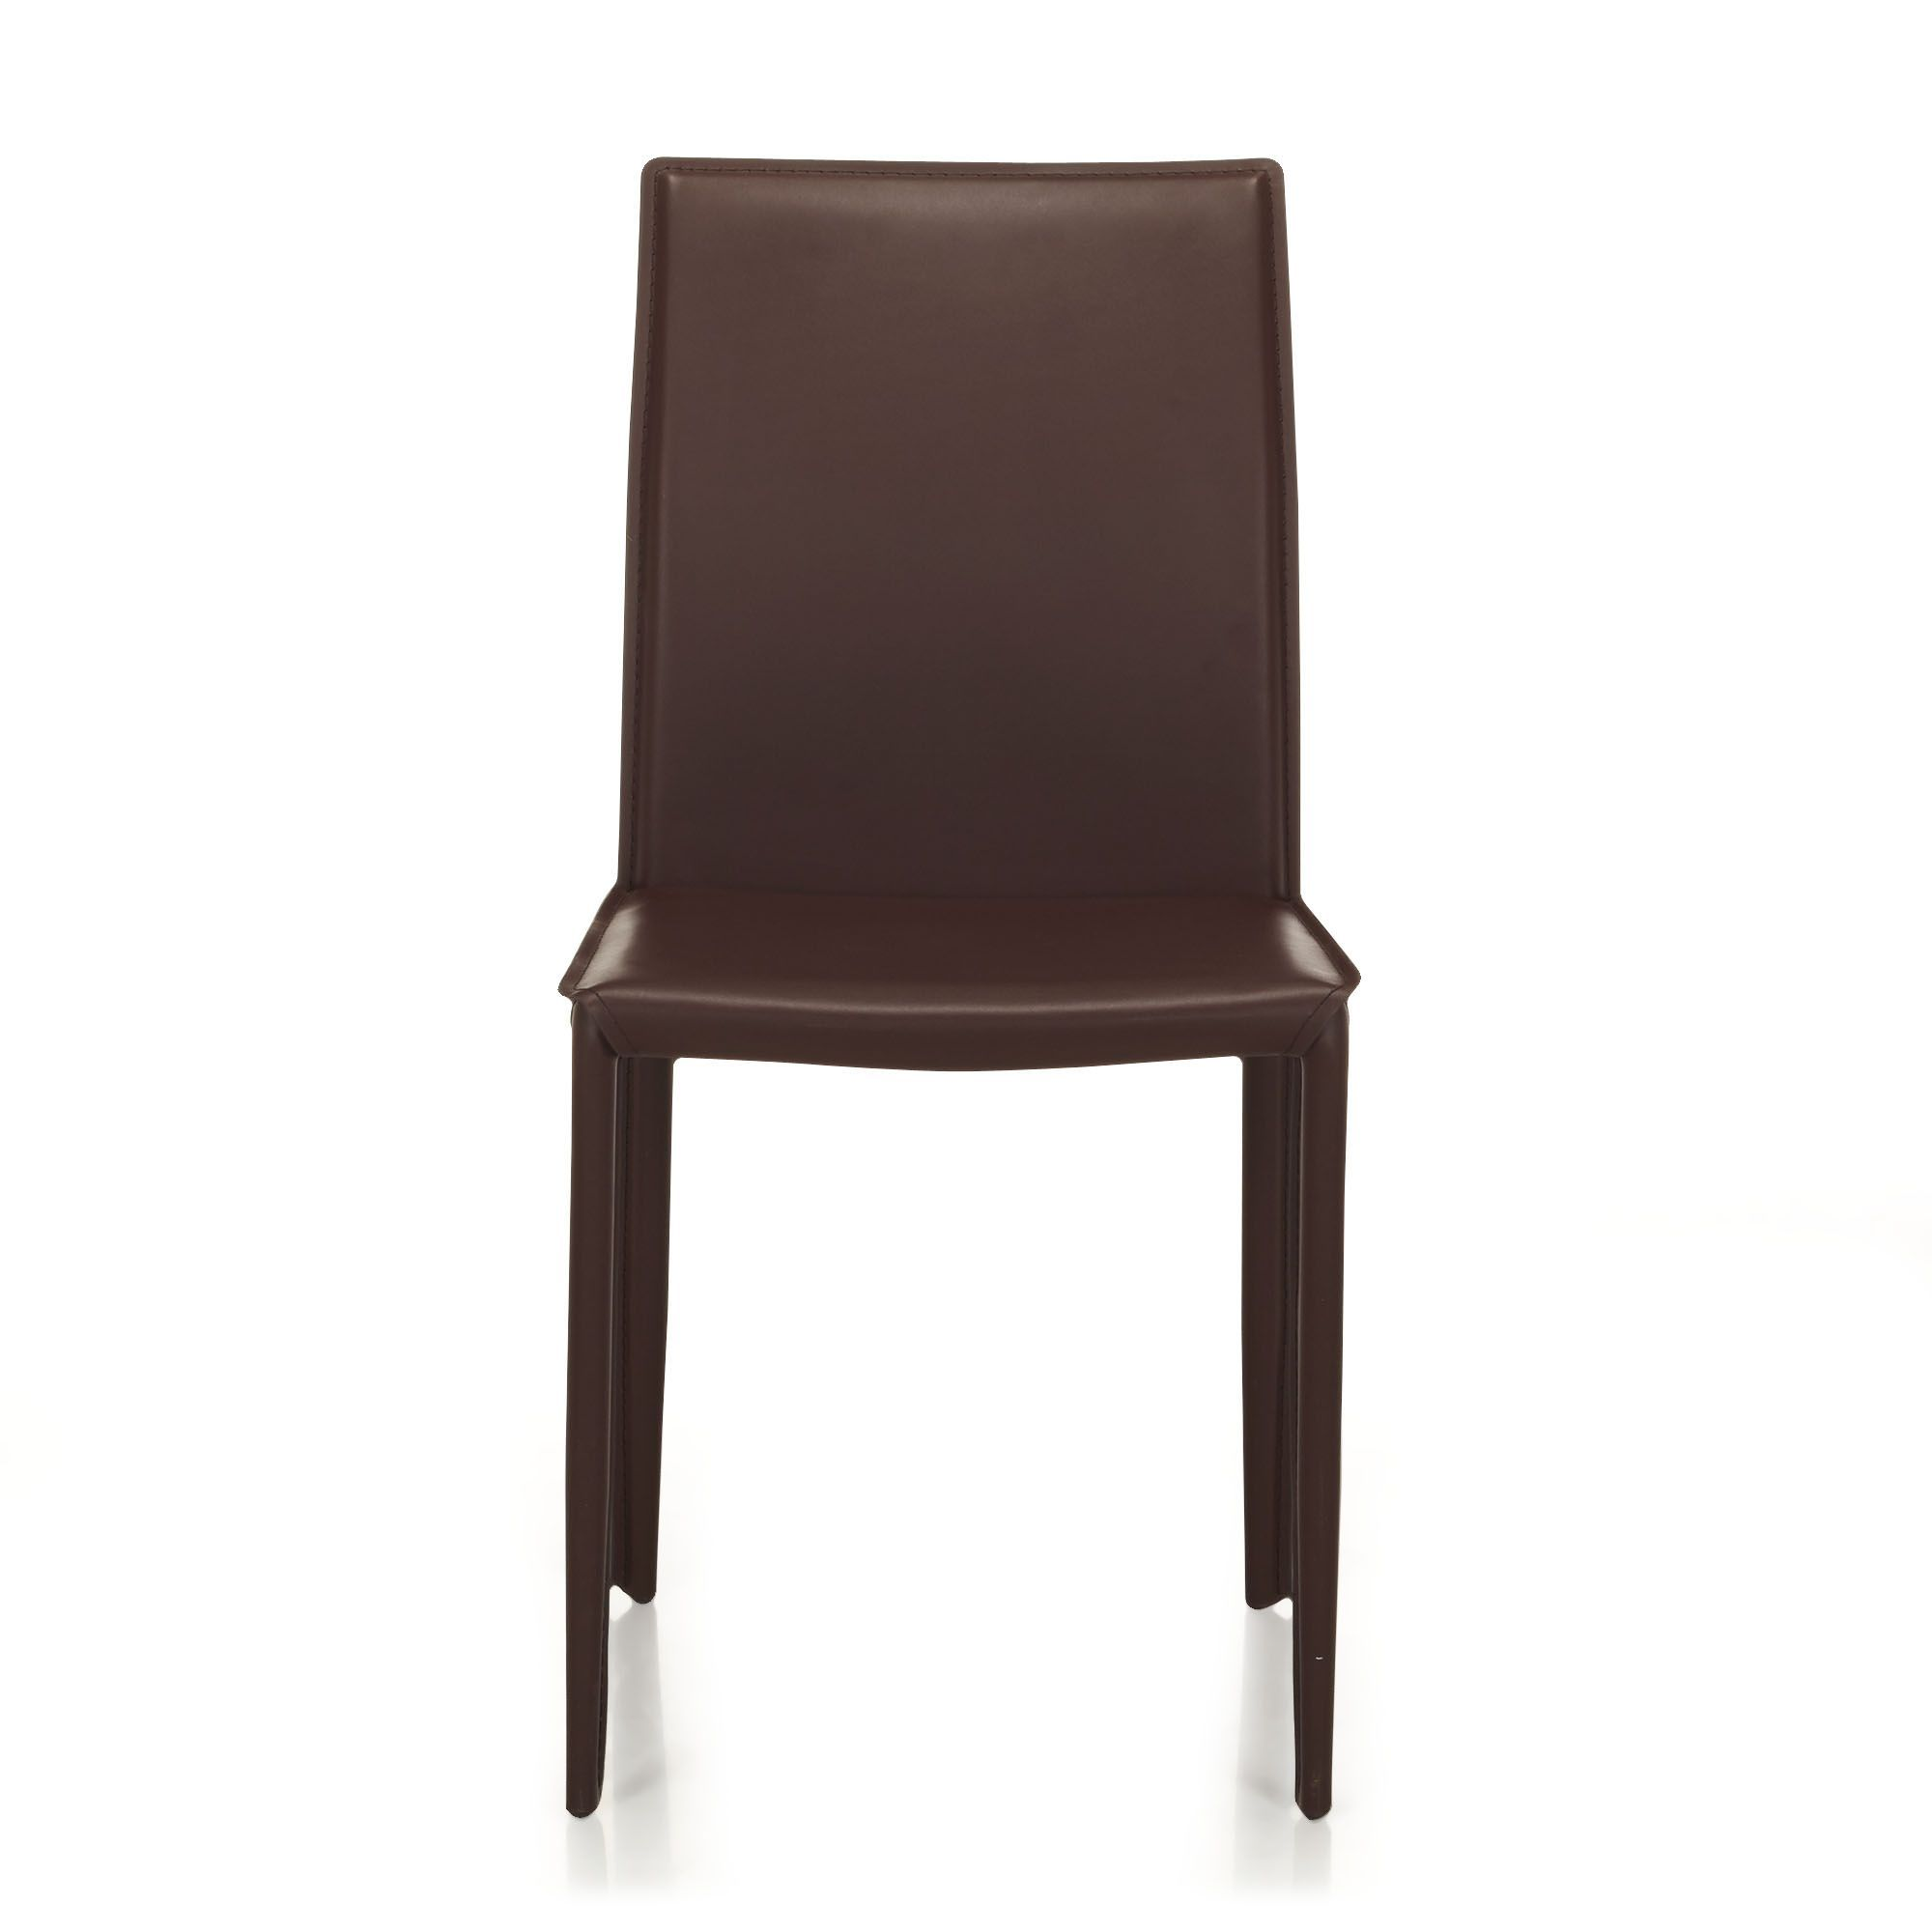 Chaise en cro te de cuir marron marron andrew chaises for Chaise salon cuir